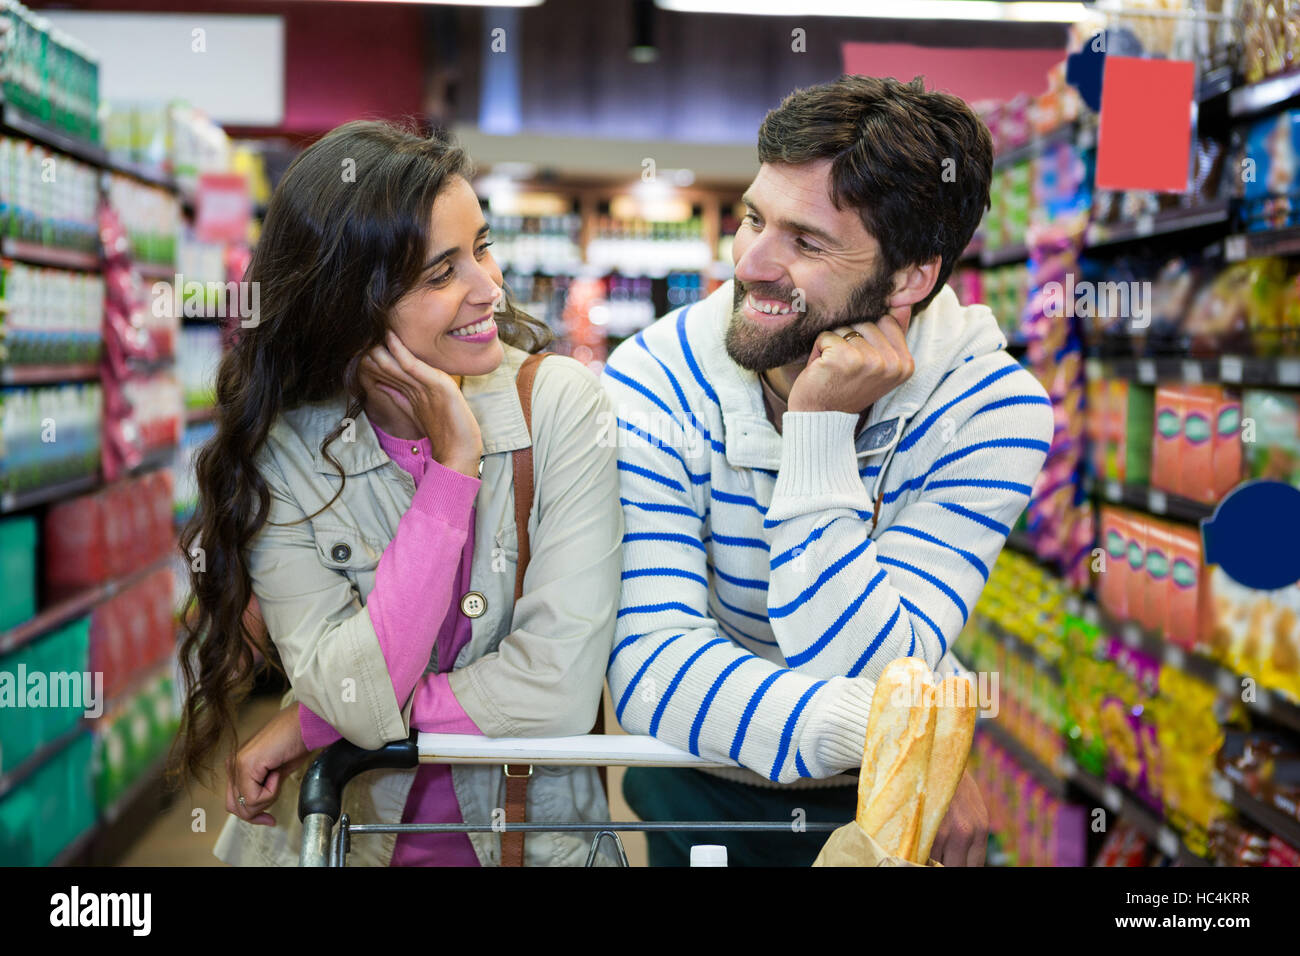 Couple leaning on trolley at supermarket - Stock Image